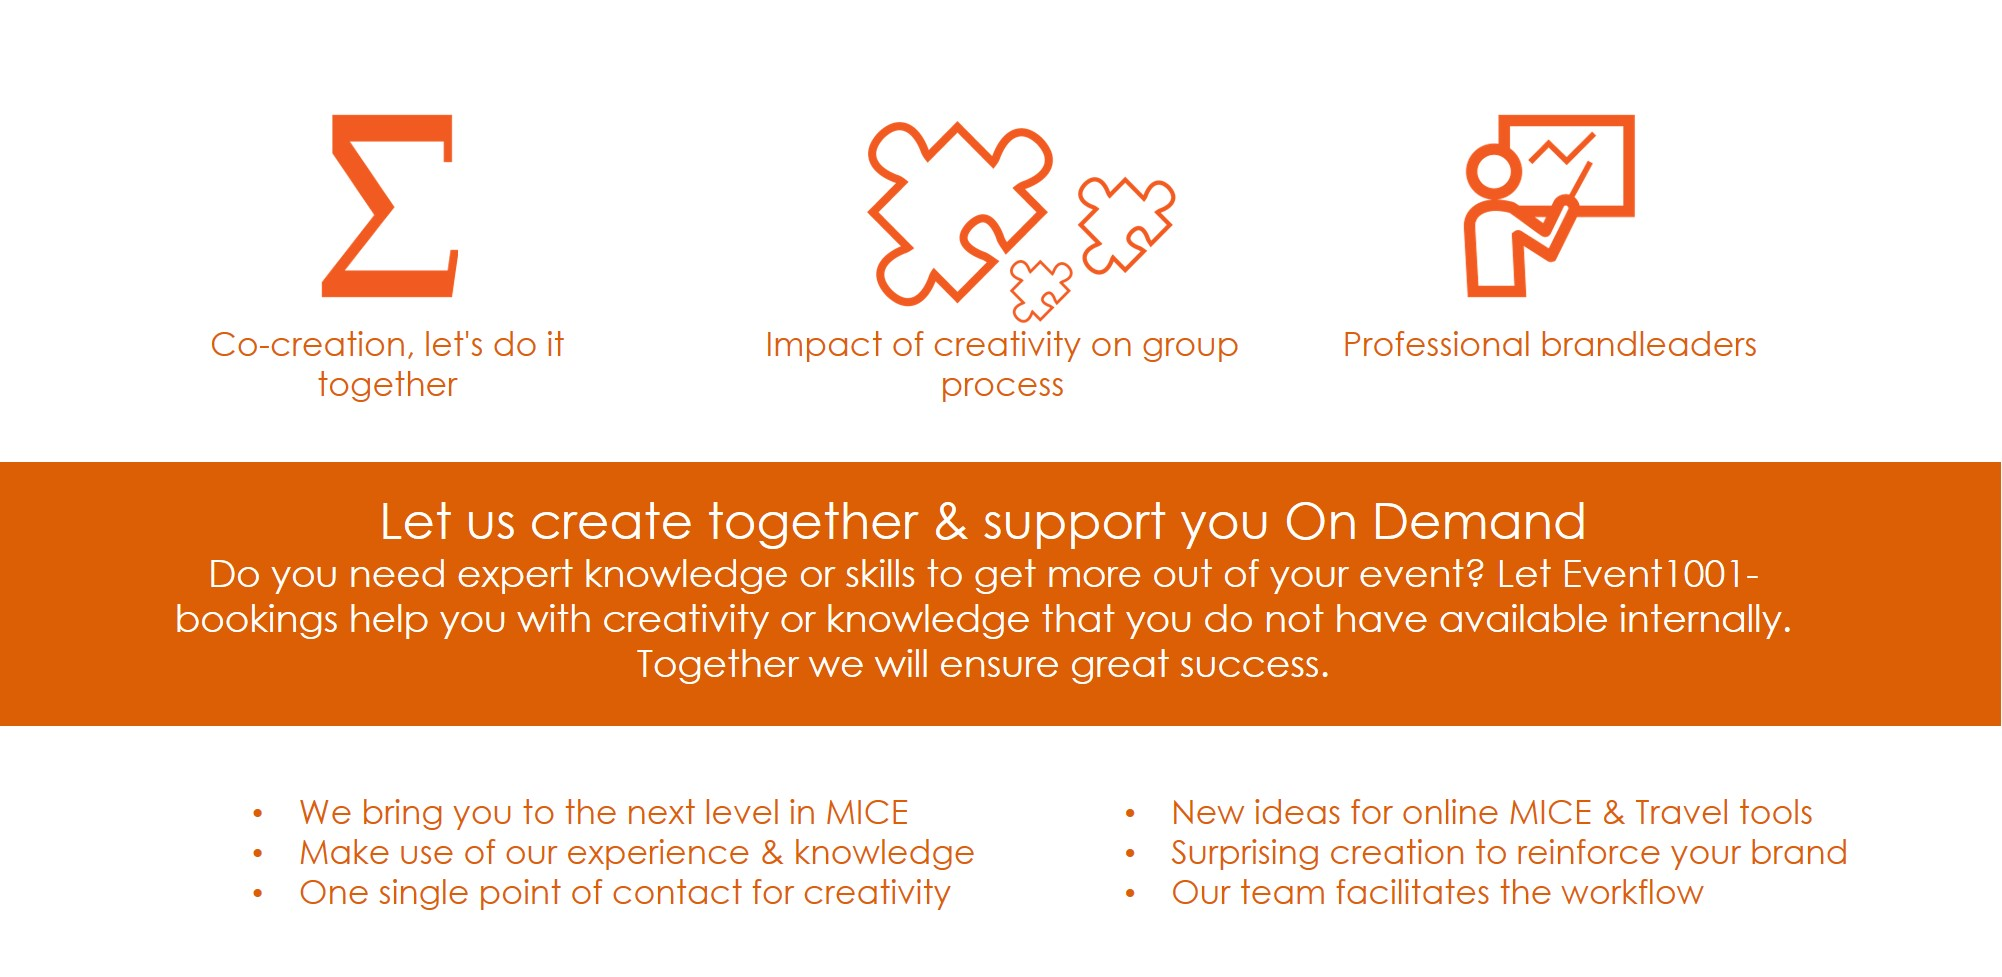 Co-creation, let's do it together Are you organising your own event yourself, but do you need expert knowledge or skills to get more out of your event? Are you standing alone or do the representatives of an organisation not cover all the competences needed to ensure that your stand will be a success at trade fair? Let Event1001-bookings help you with creativity or knowledge that you do not have available internally. Together we will ensure great success.